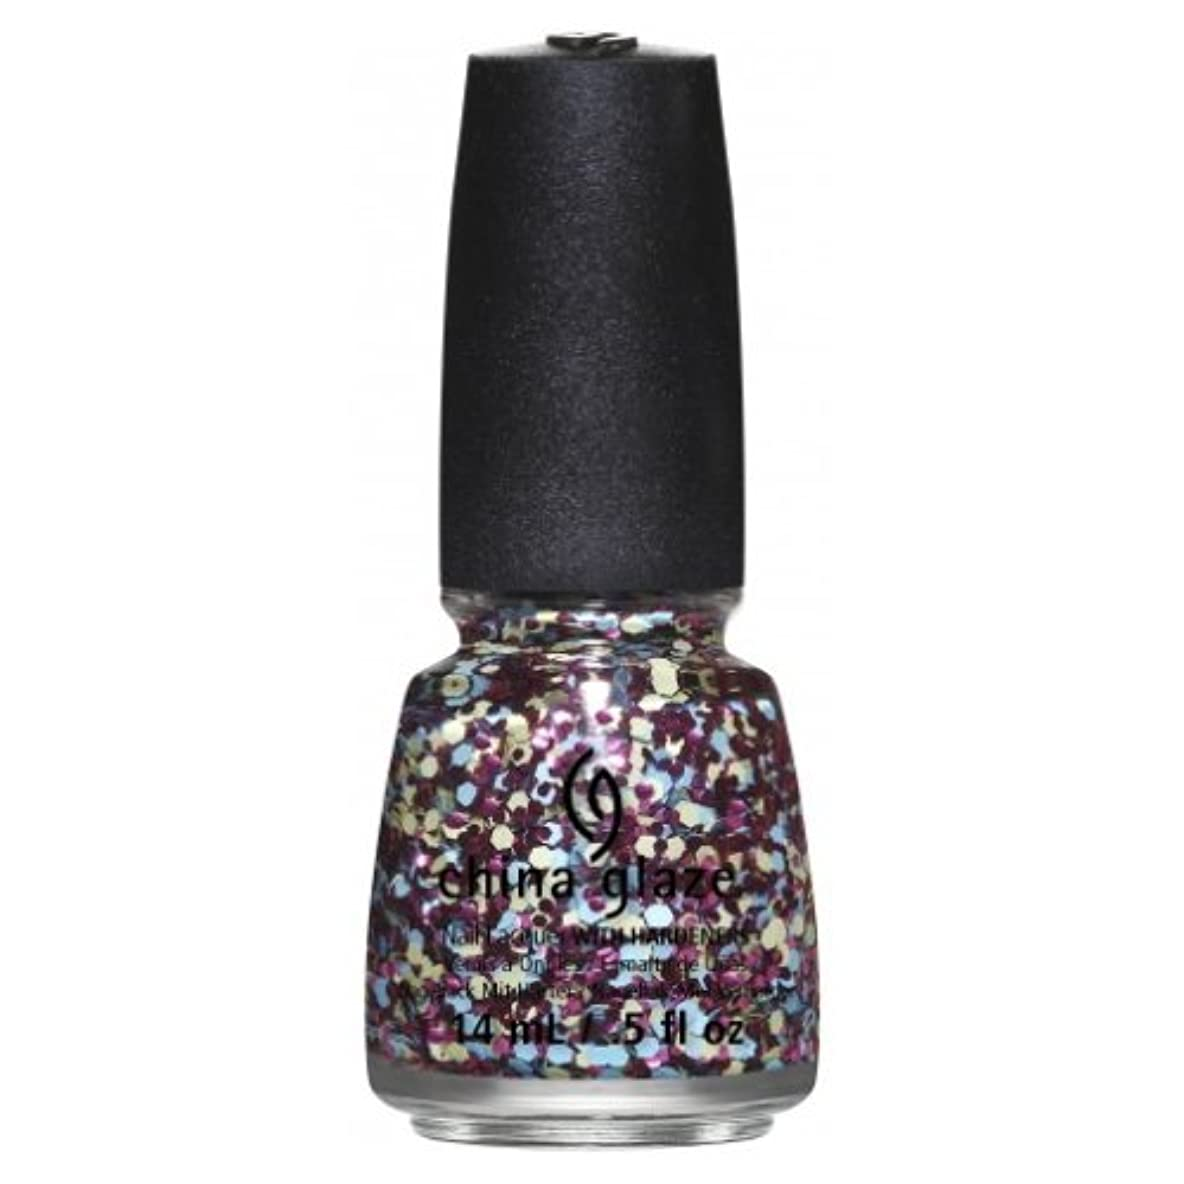 症候群ラジカル拒絶(3 Pack) CHINA GLAZE Nail Lacquer - Suprise Collection - I'm A Go Glitter (並行輸入品)